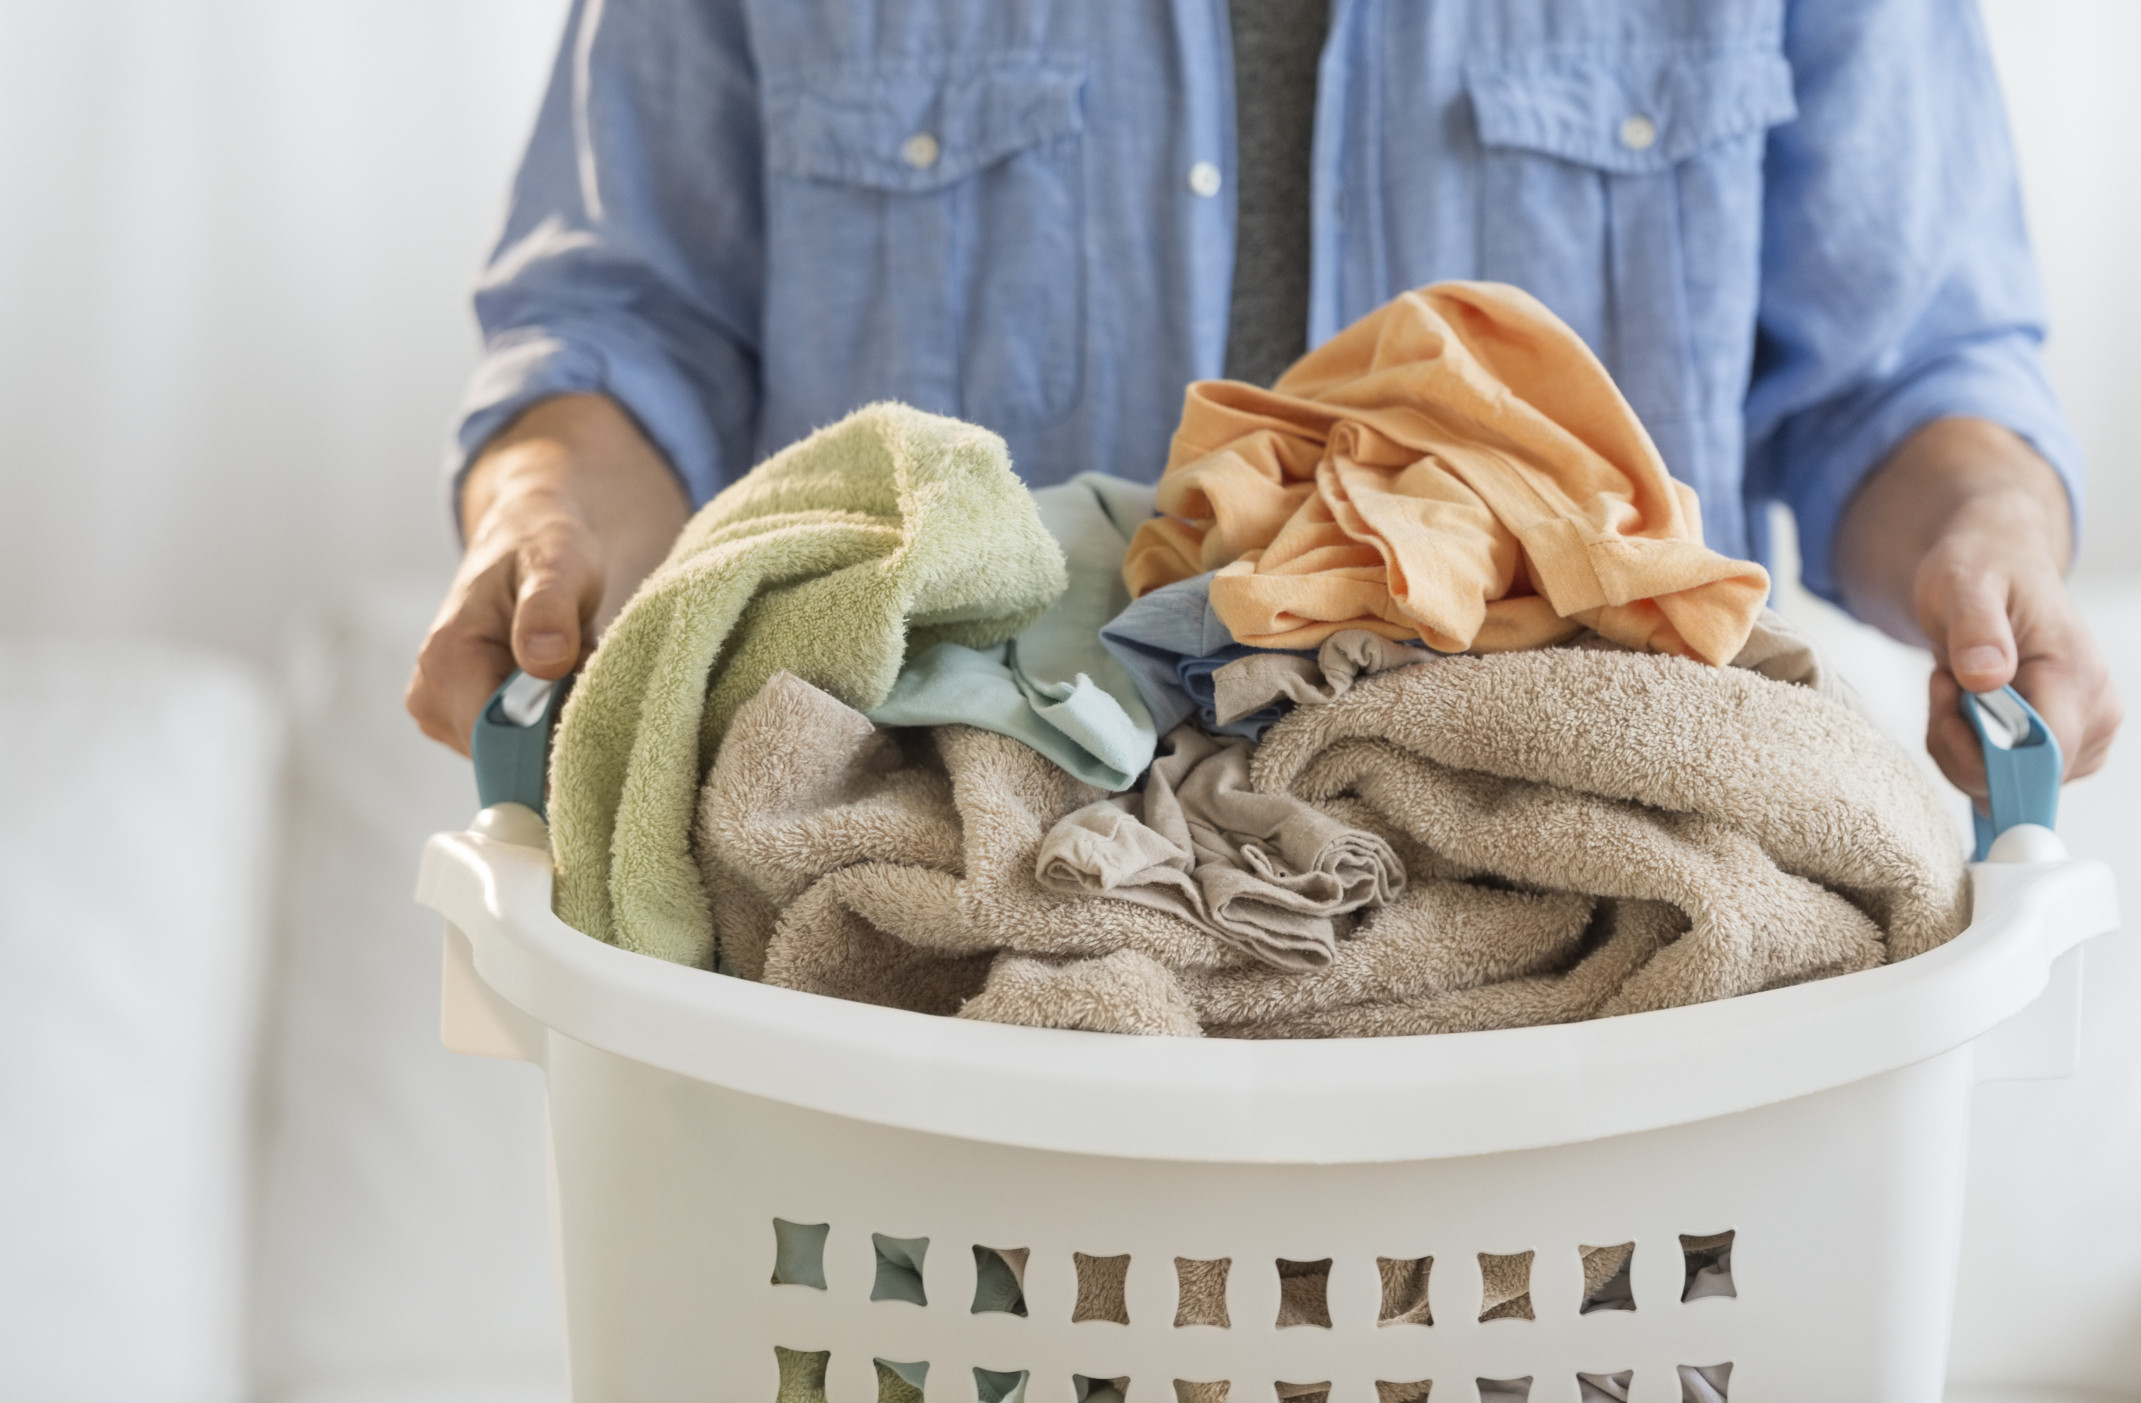 Separate Laundry Basket 5 Mistakes We All Make When Cleaning Our Sheets Huffpost